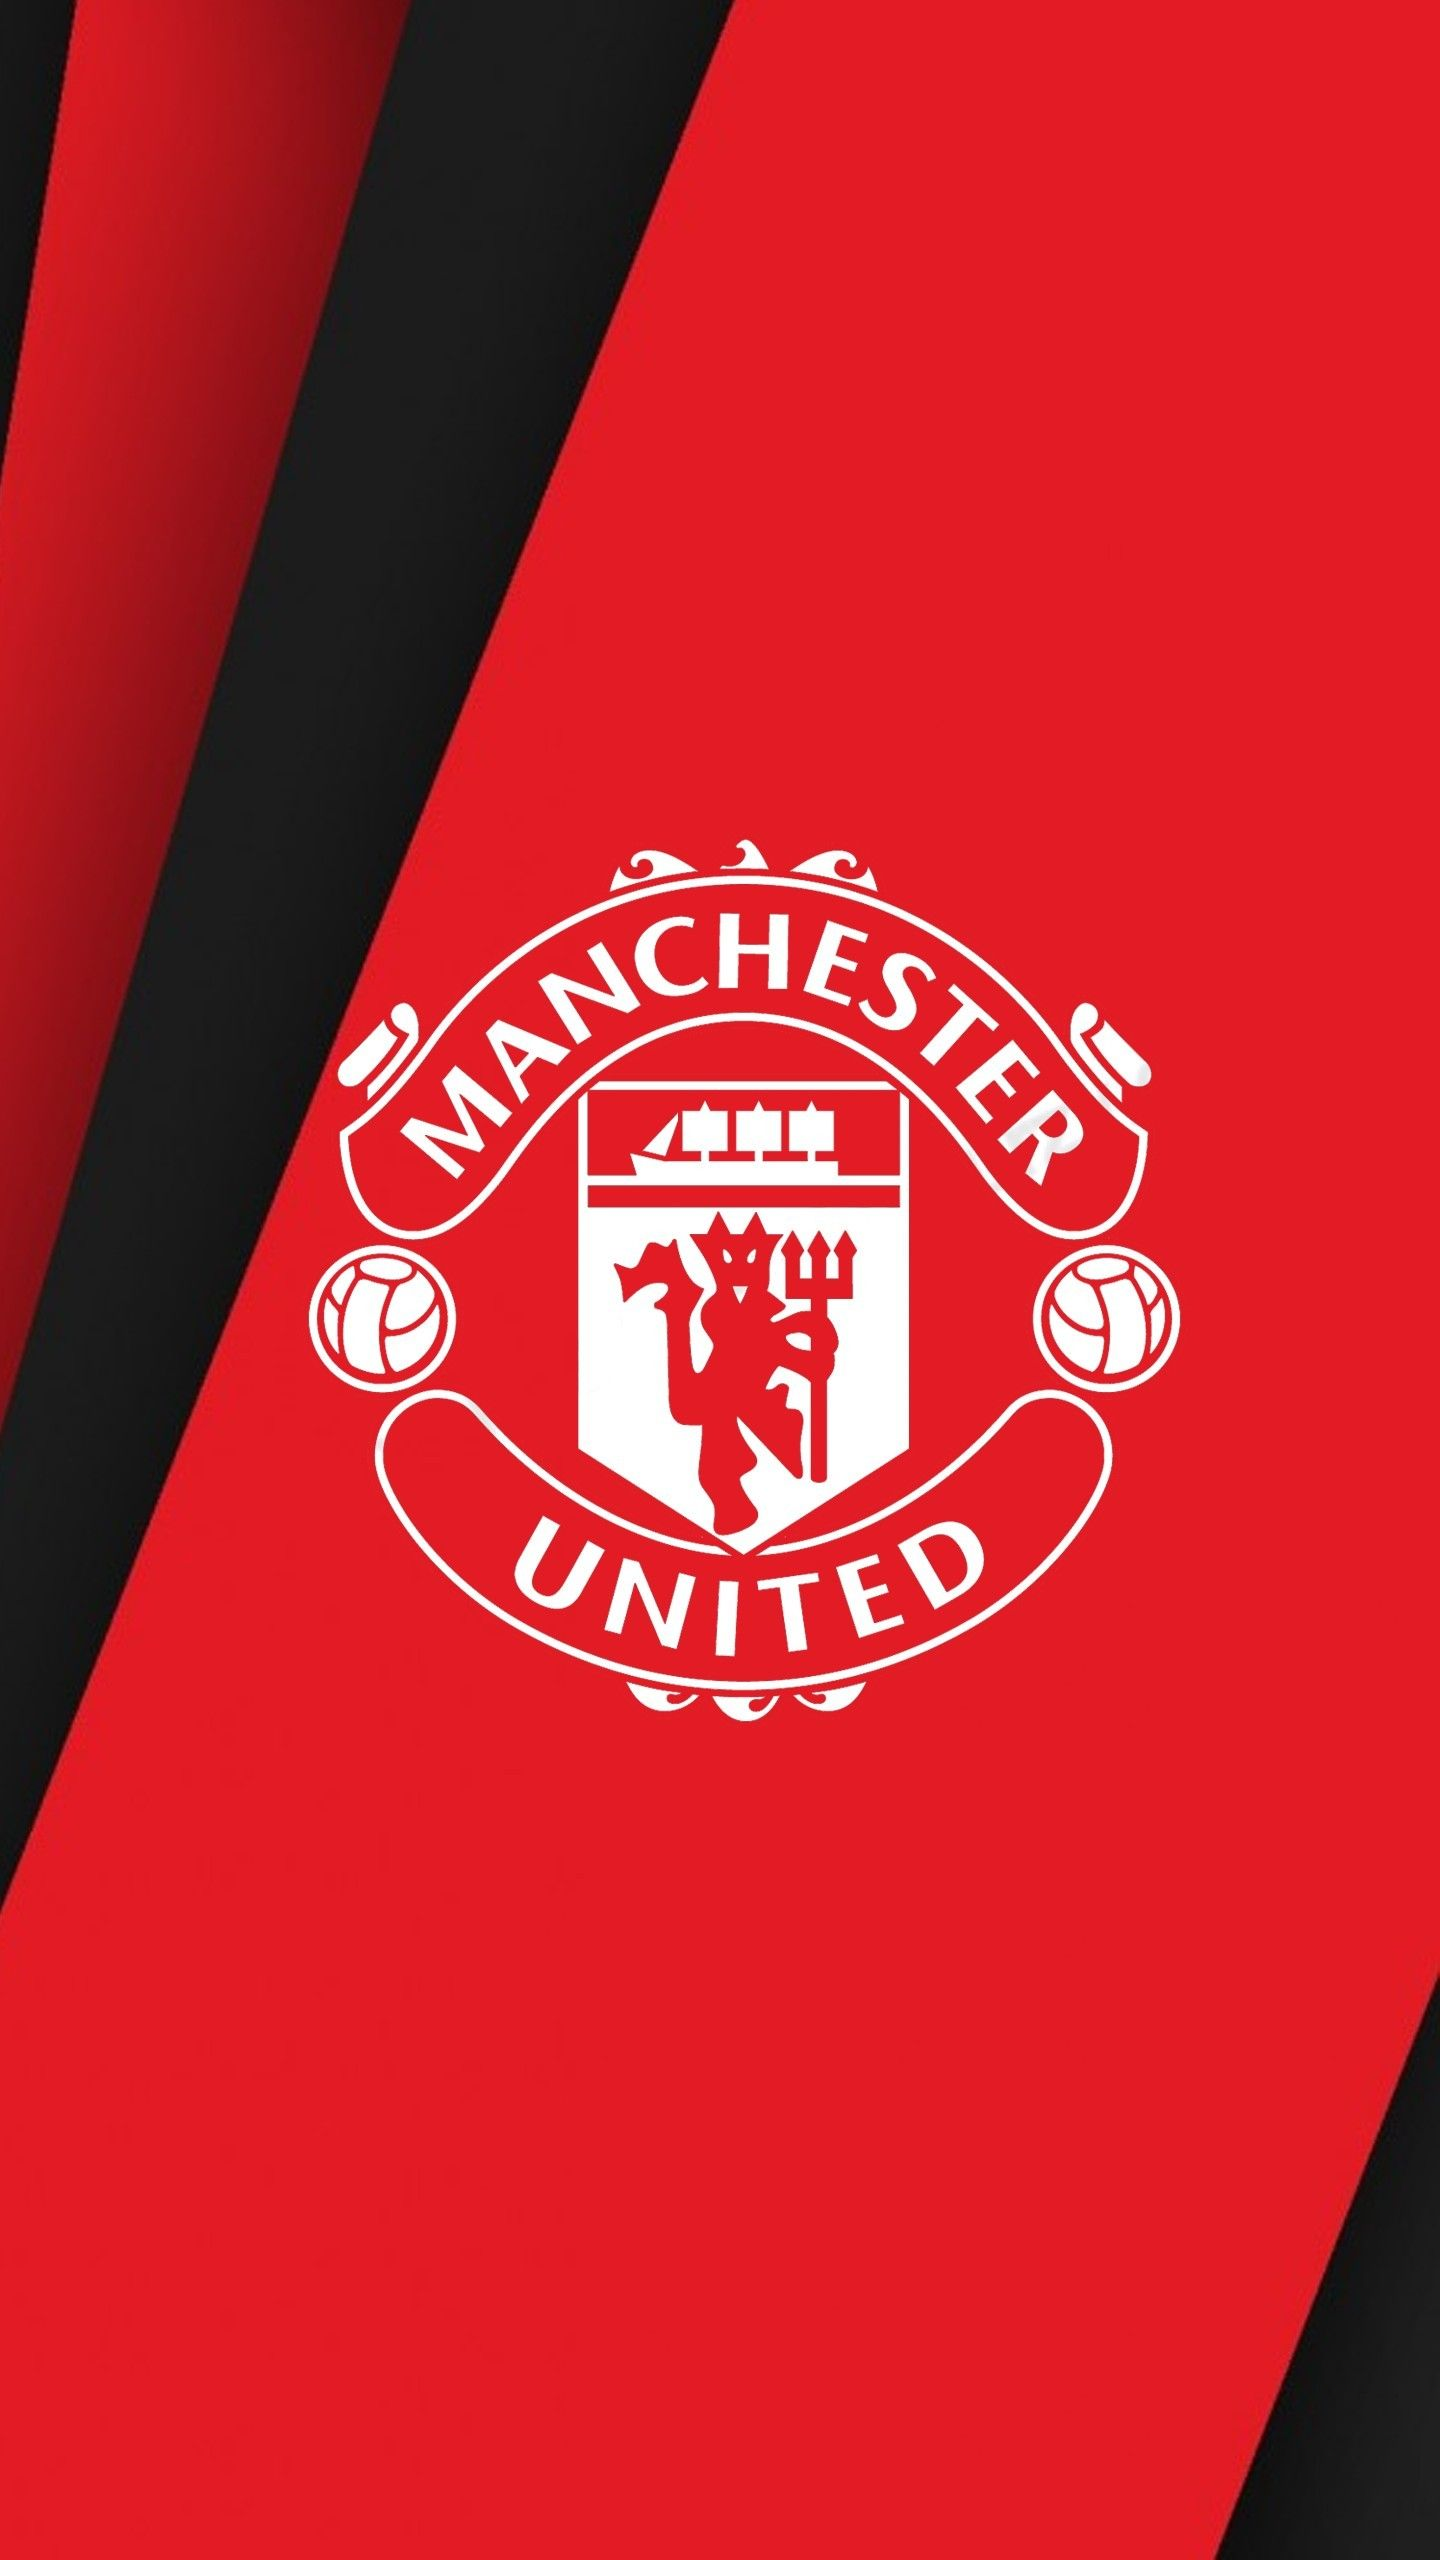 Manchester United Macbook Wallpaper Hd Football In 2020 Manchester United Wallpaper Manchester United Wallpapers Iphone Manchester United Logo